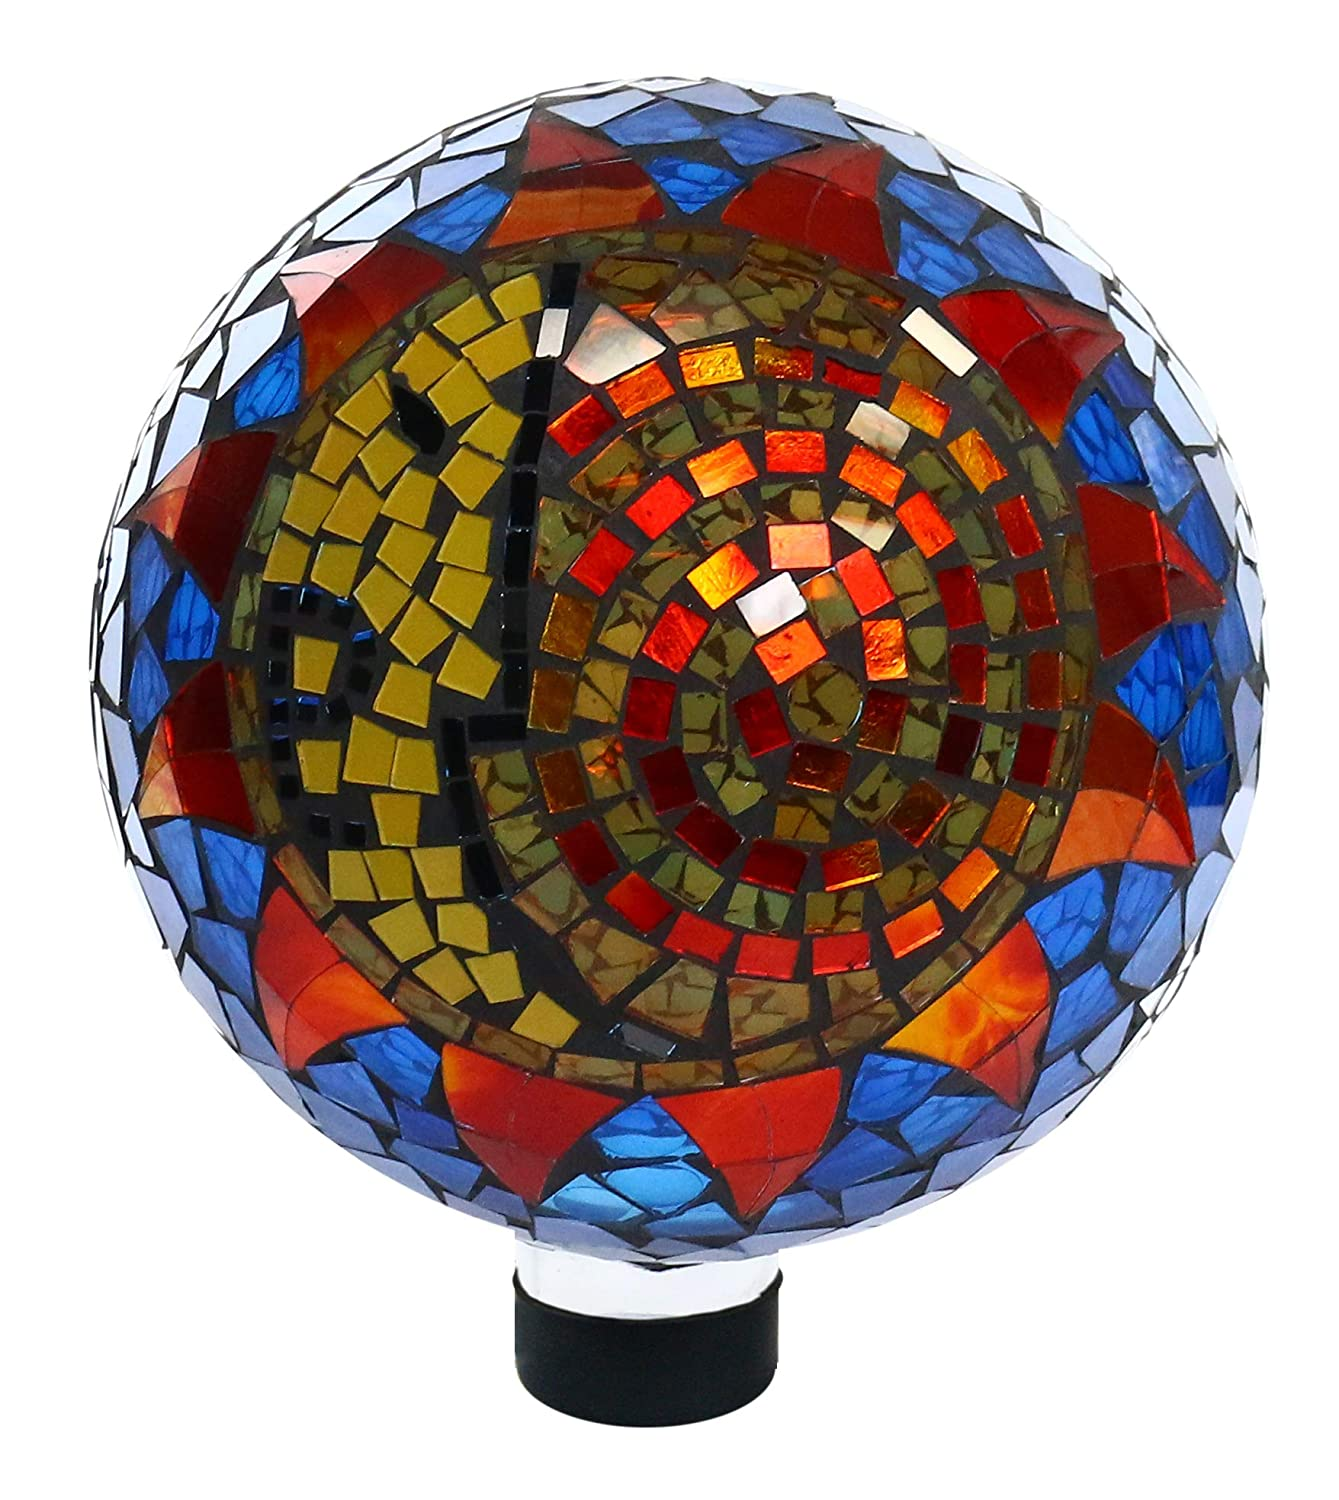 Alpine HGY120 Mosaic Sun and Moon Gazing Globe, 12 Inch Tall Multi-Color